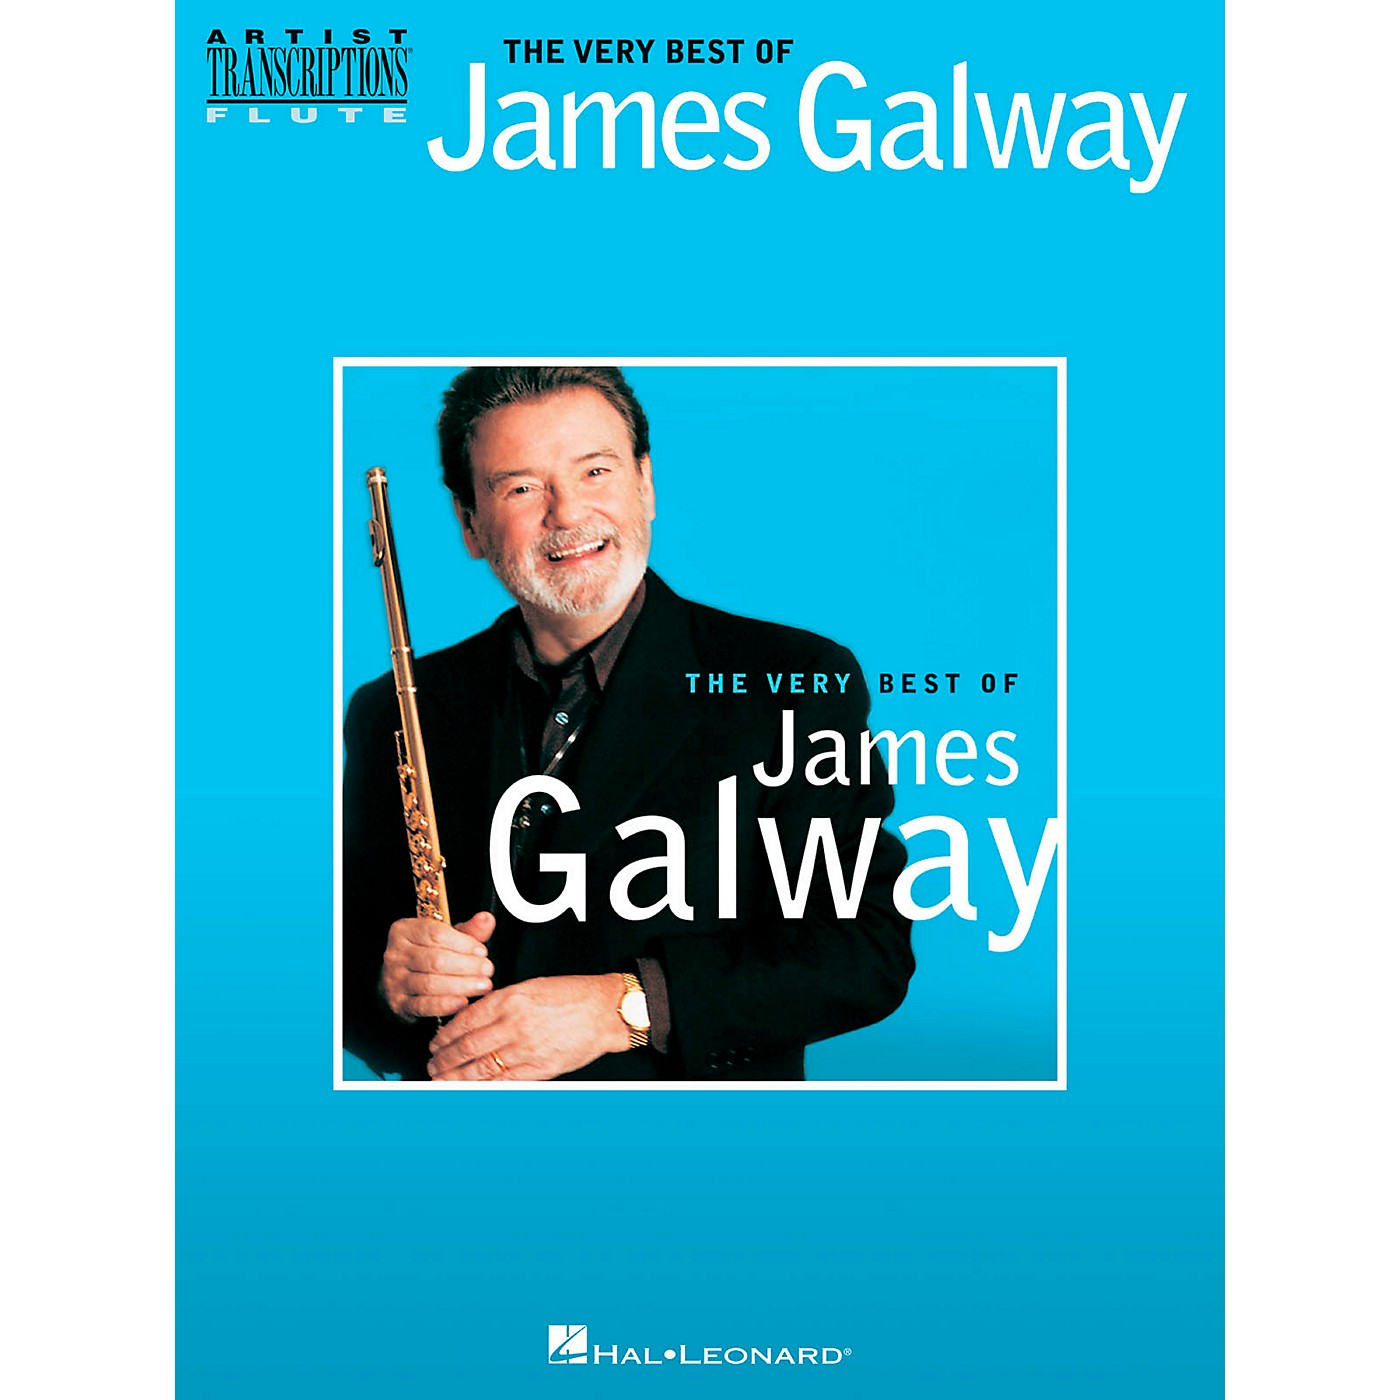 Hal Leonard The Very Best Of James Galway Flute Transcriptions thumbnail